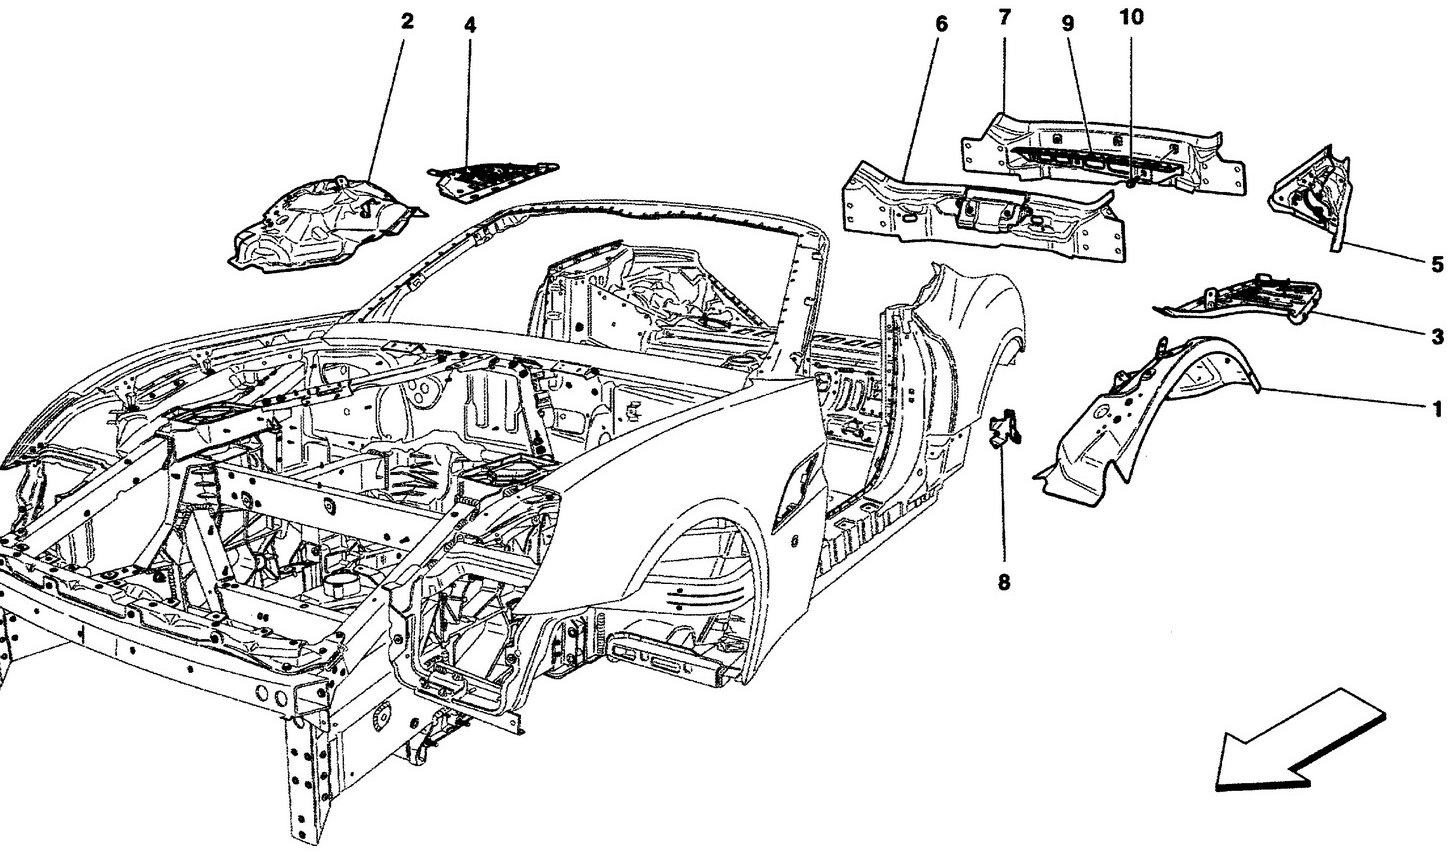 BODYWORK AND REAR OUTER TRIM PANELS